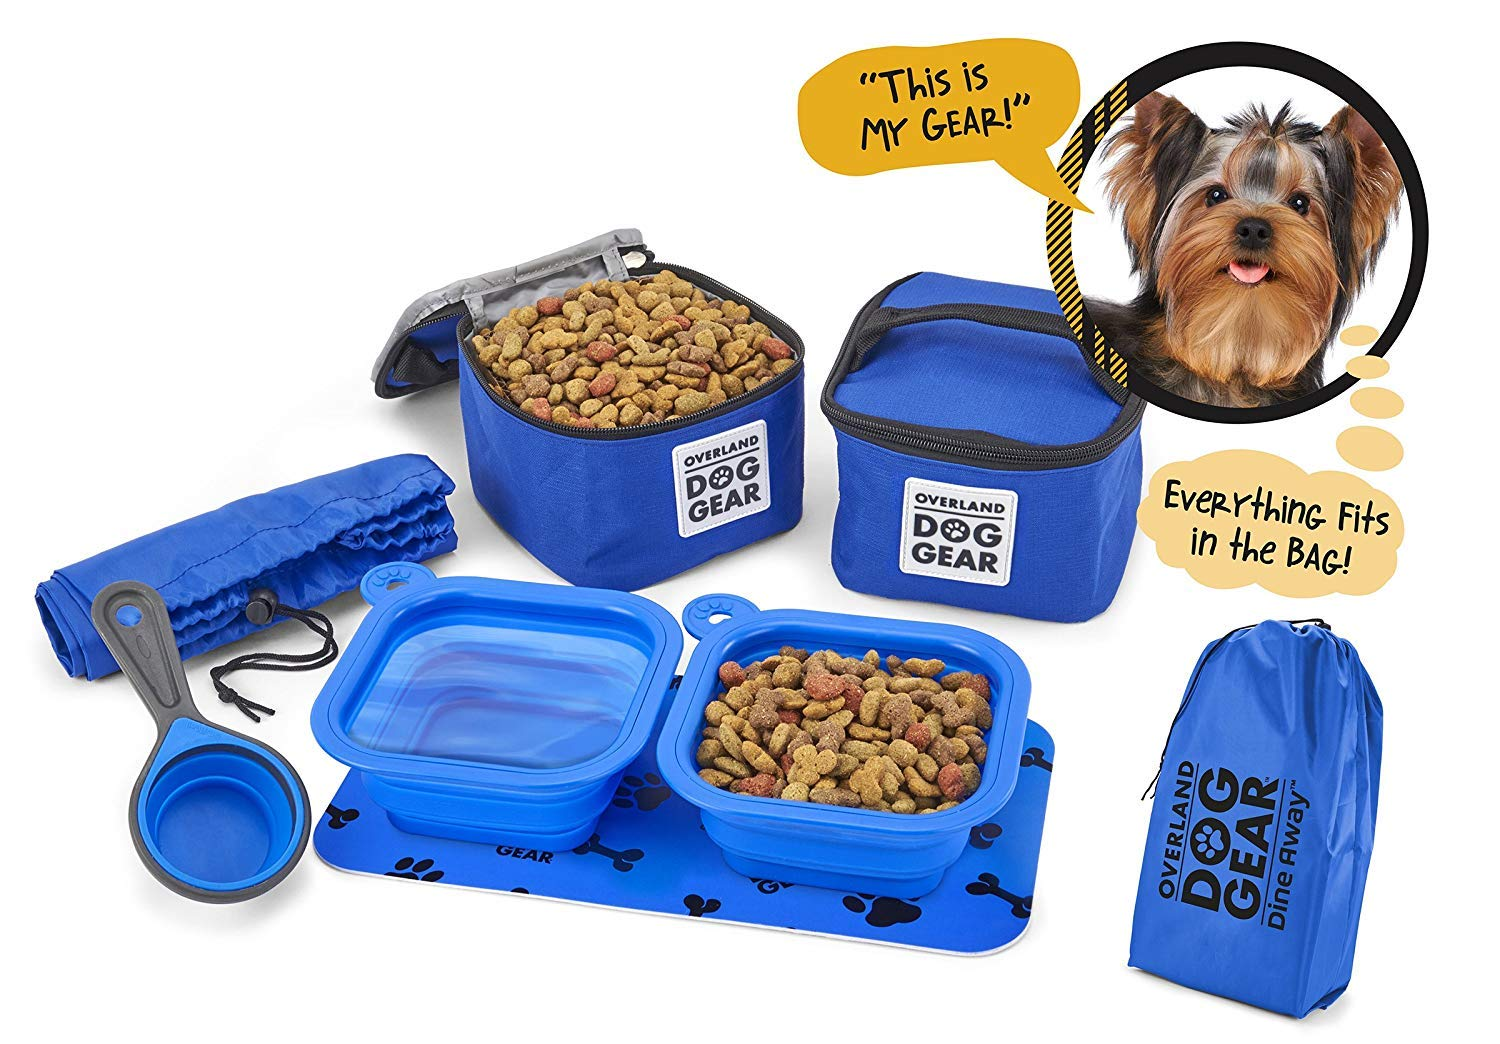 Dog Travel Food Set For Small Dogs (Blue) - 7pk Including Collapsible Bowls, Carriers, Scooper, Place Mat, Bag by Overland Dog Gear